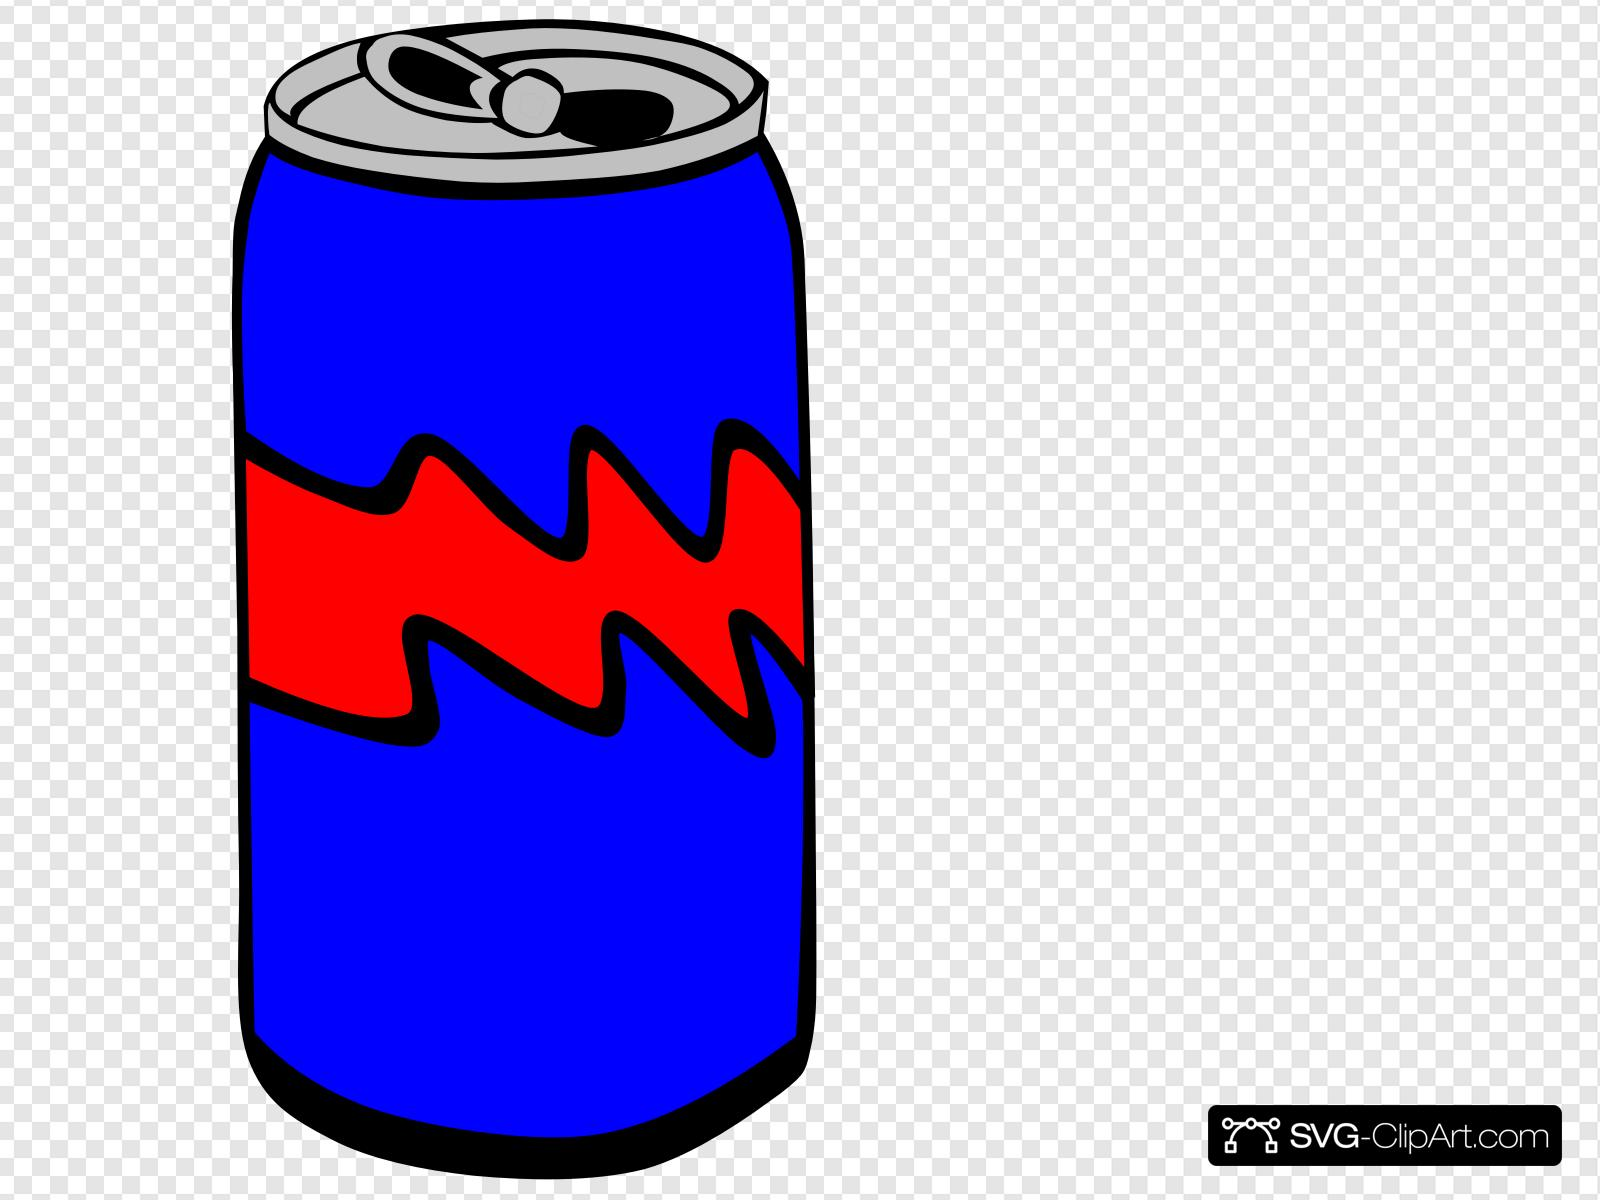 Blue Pop Can Clip art, Icon and SVG.